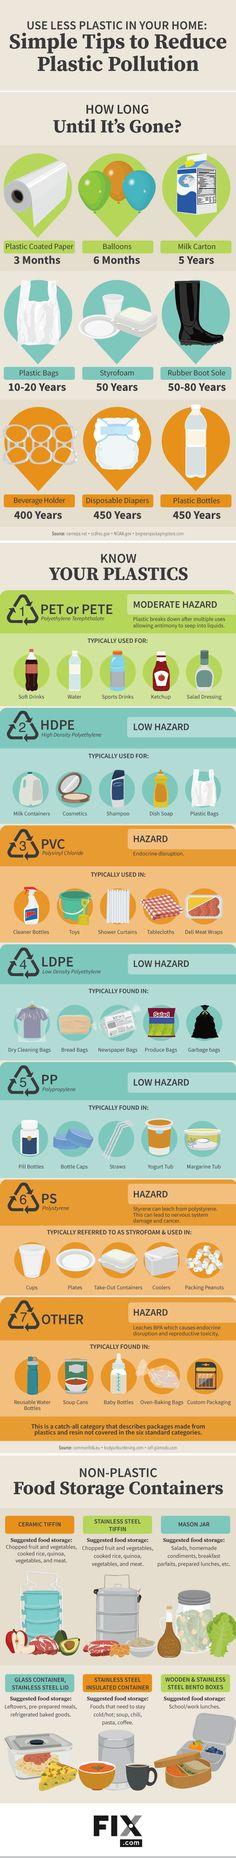 Trying to be more green and cut down on your use of plastic? This nice infographic shows everything you need to know about plastics plus tips for healthier alternatives to plastic.